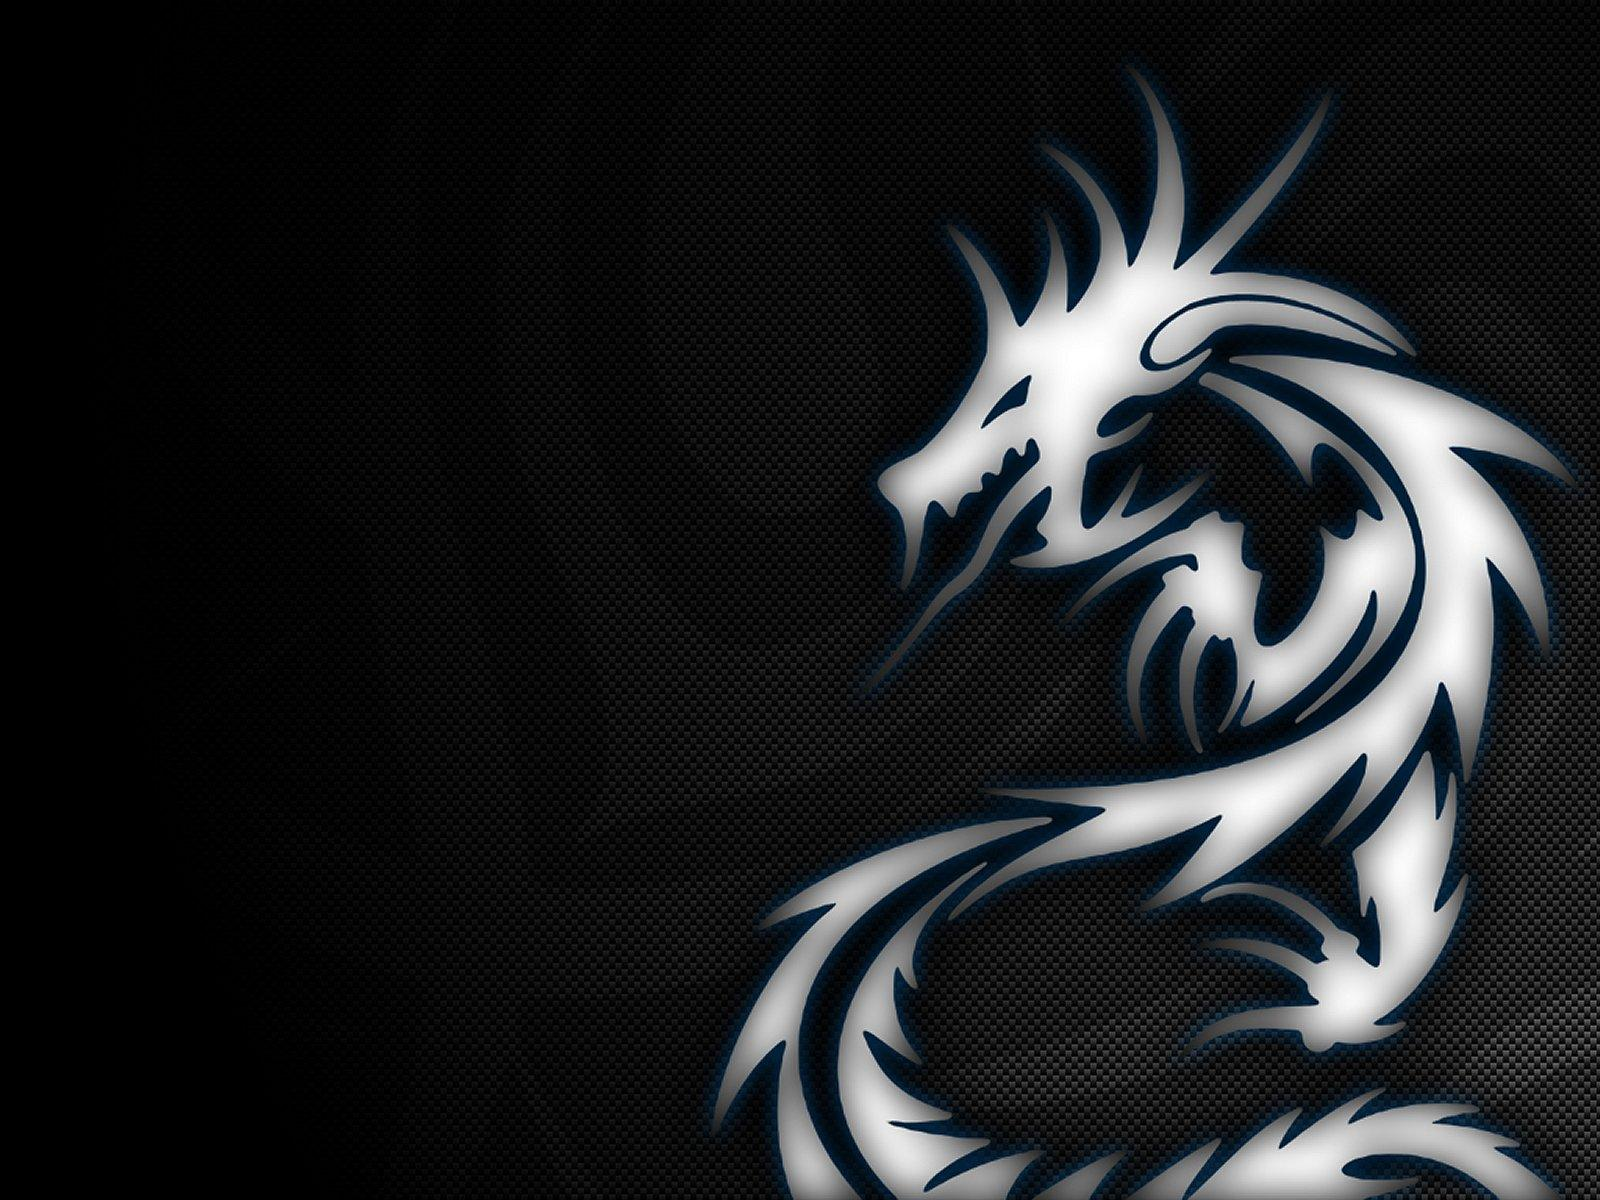 Collection of Dragon Background Pictures on HDWallpapers